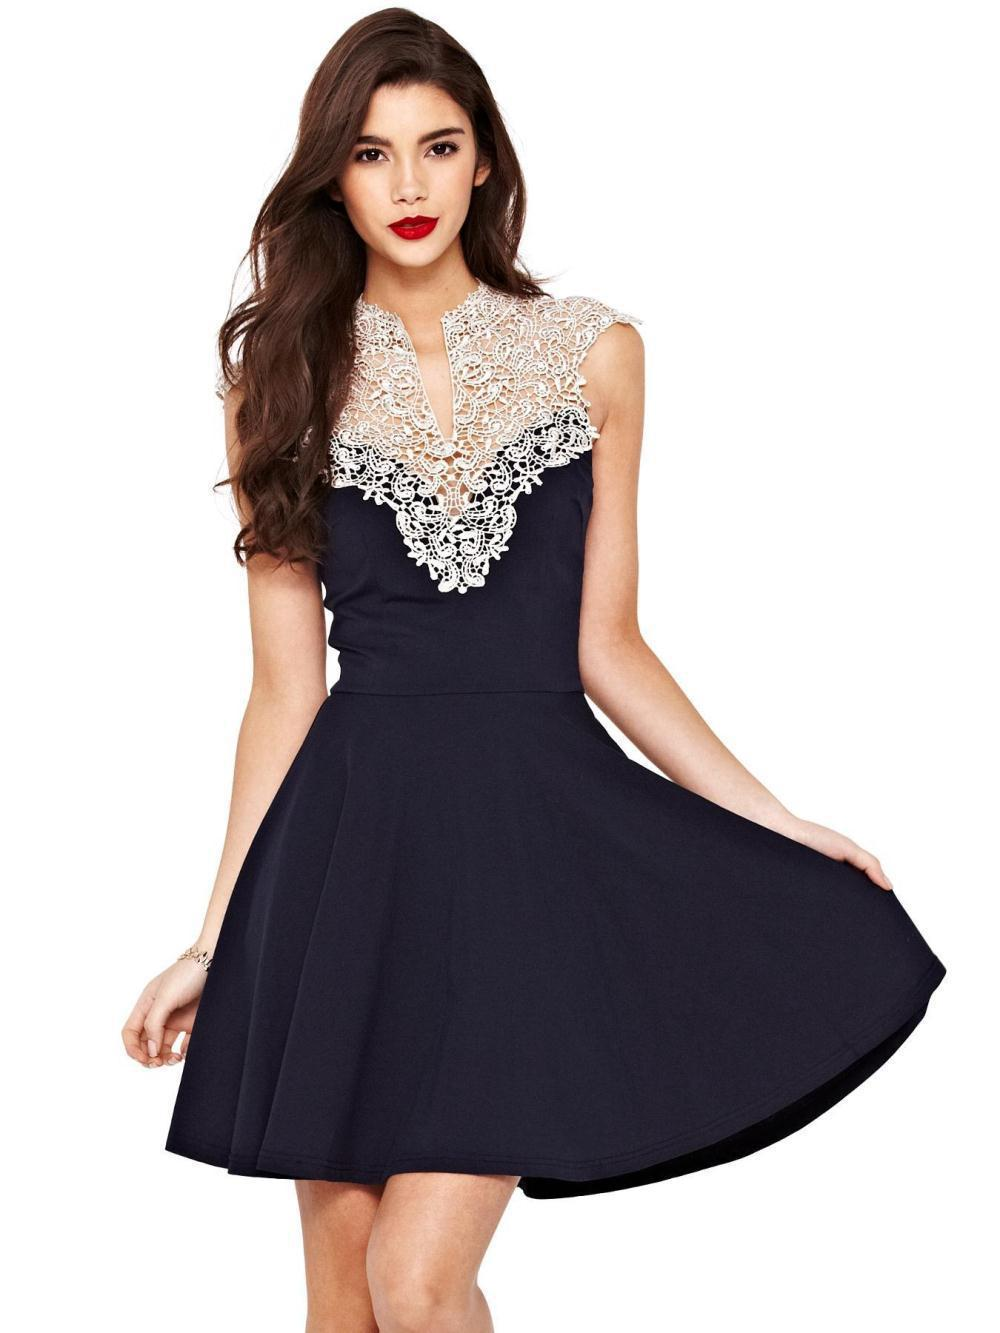 Buy Cheap summer casual dress tropical vestidos femininos 2016 New Women Lace dresses vestido size plus